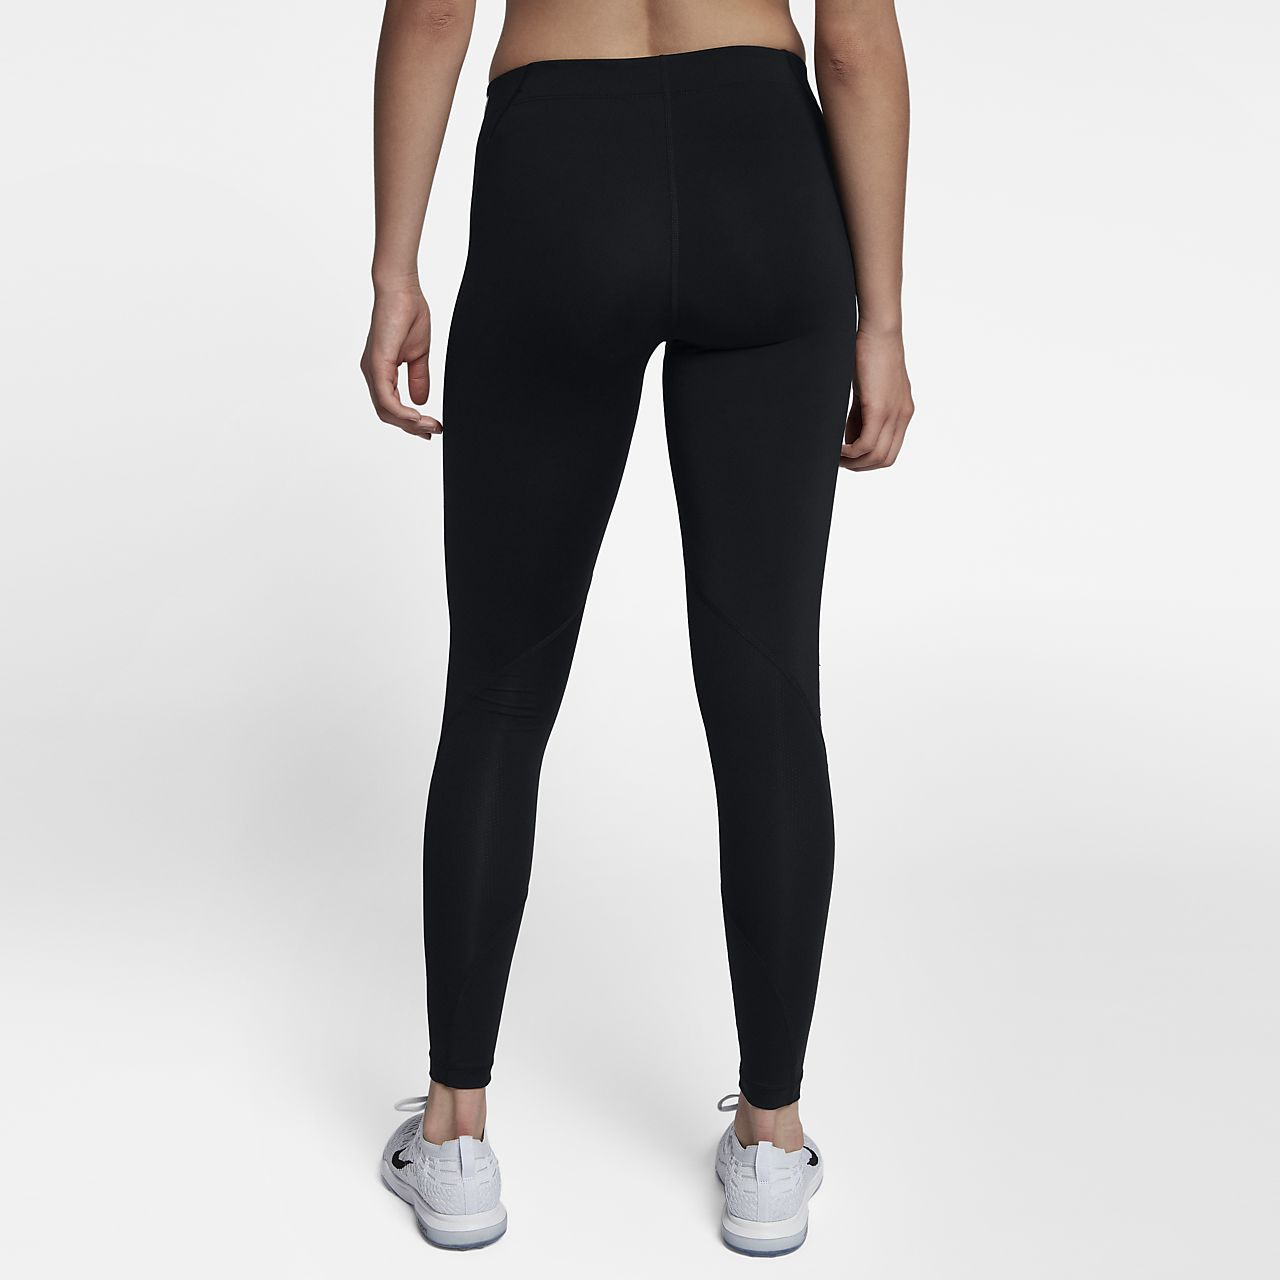 bfc68be084 Nike Pro Women's Mid-Rise Training Tights